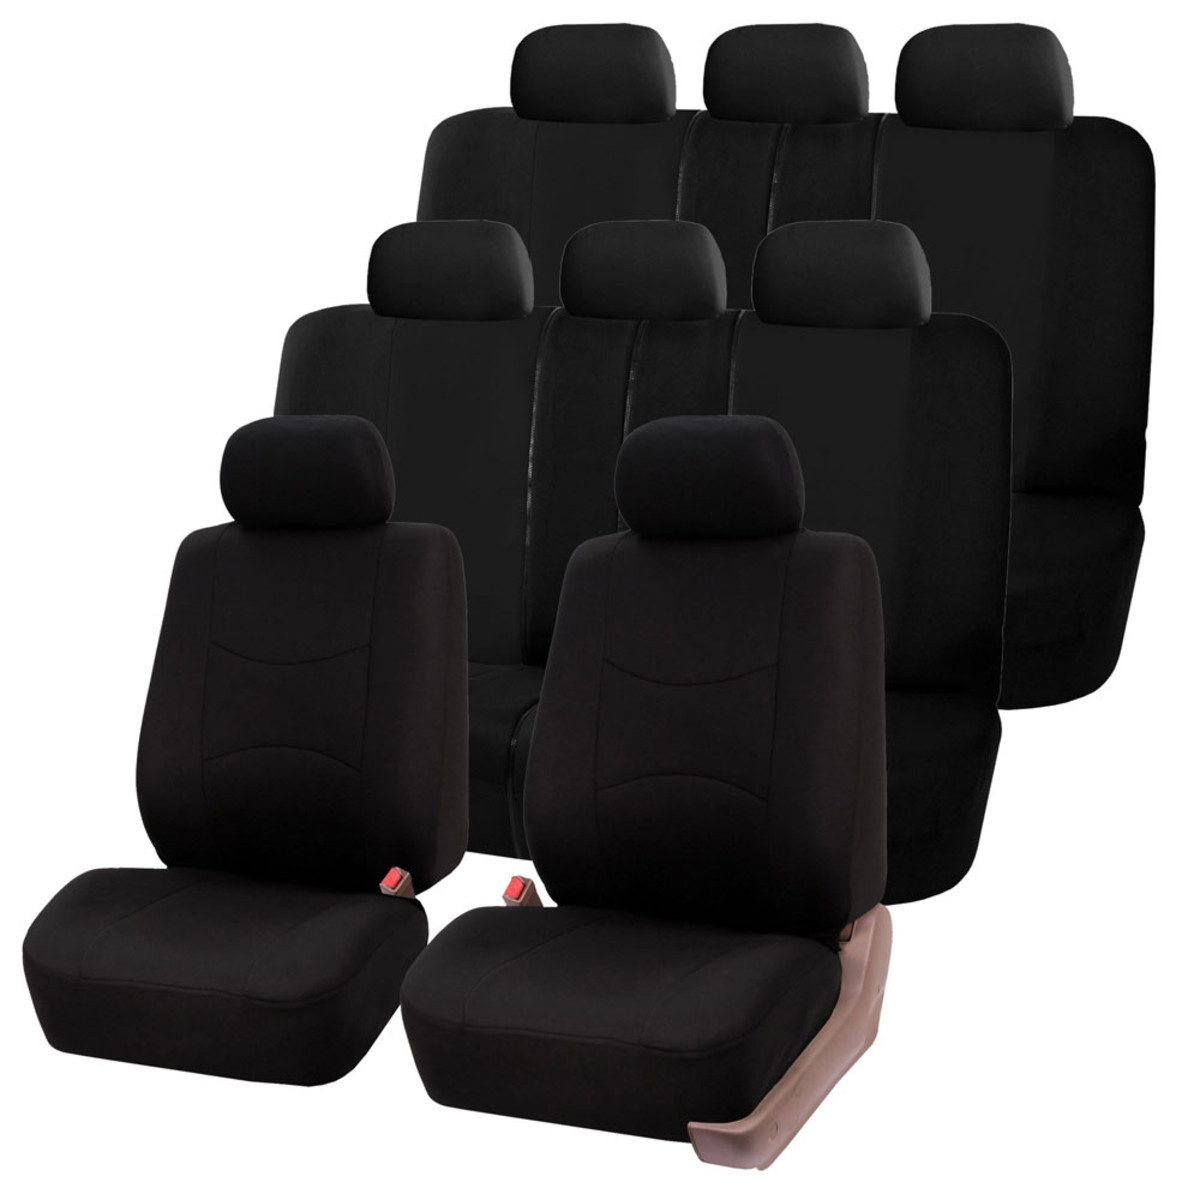 Multifunctional Flat Cloth 3 Row Car Seat Covers Fh Group